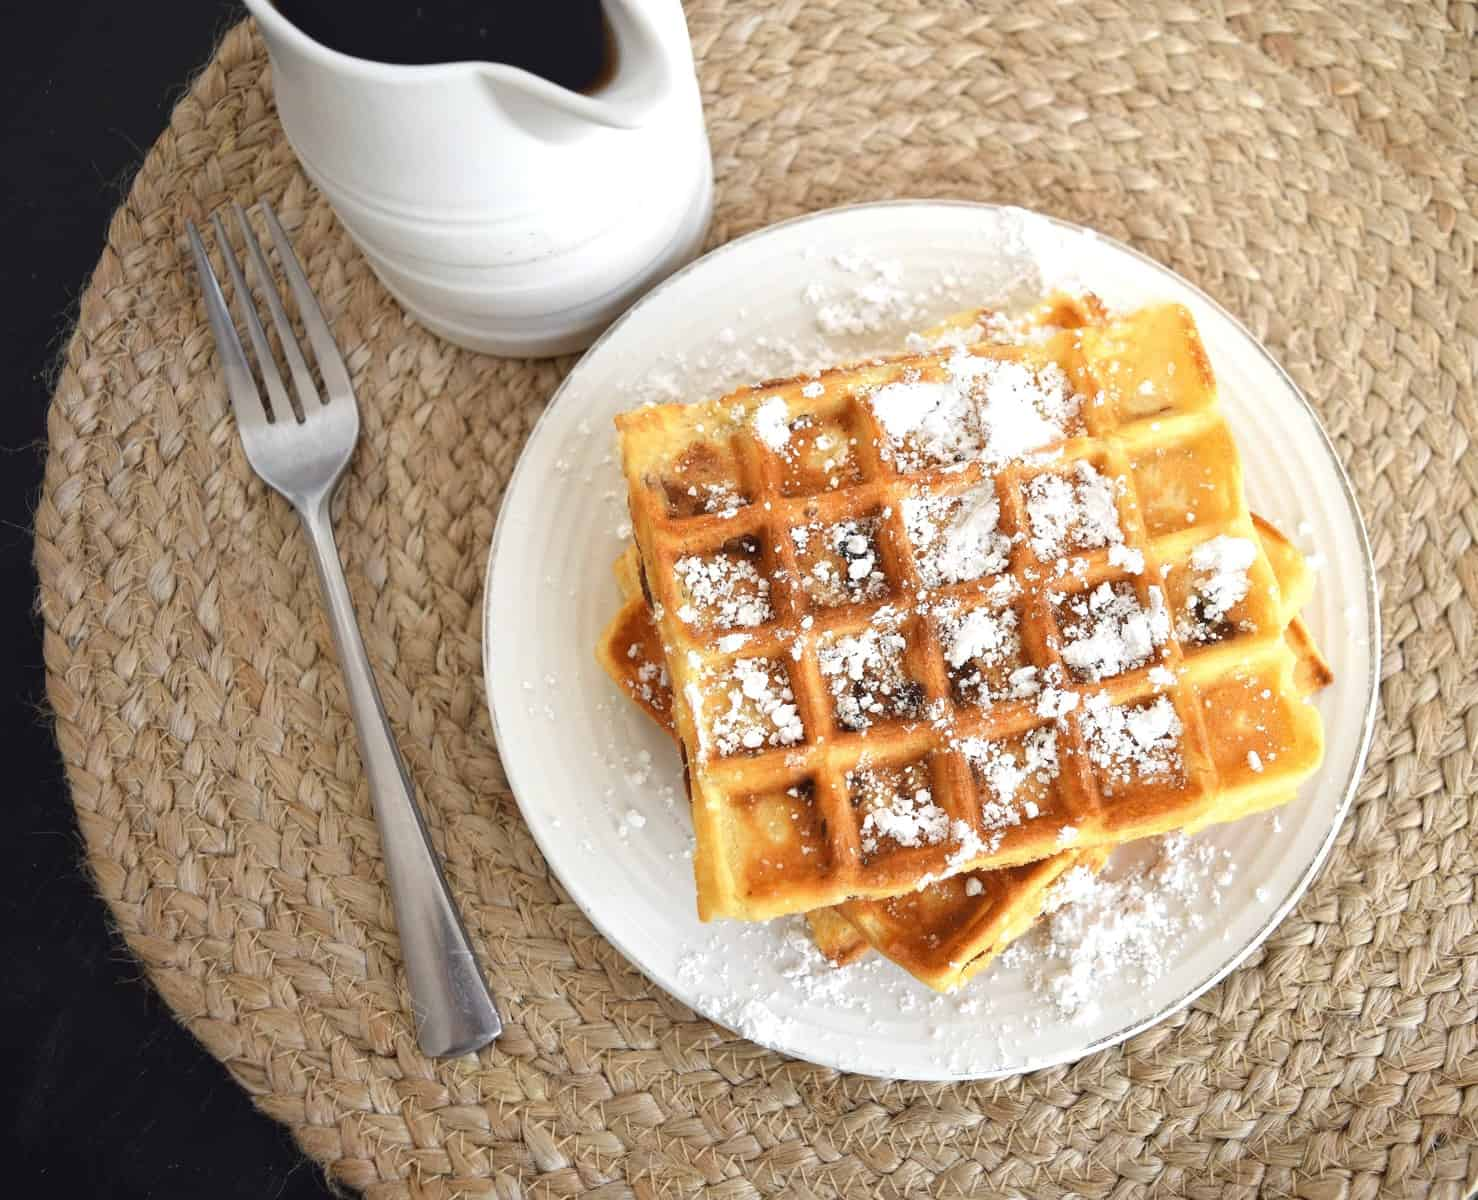 Bacon waffles with powdered sugar